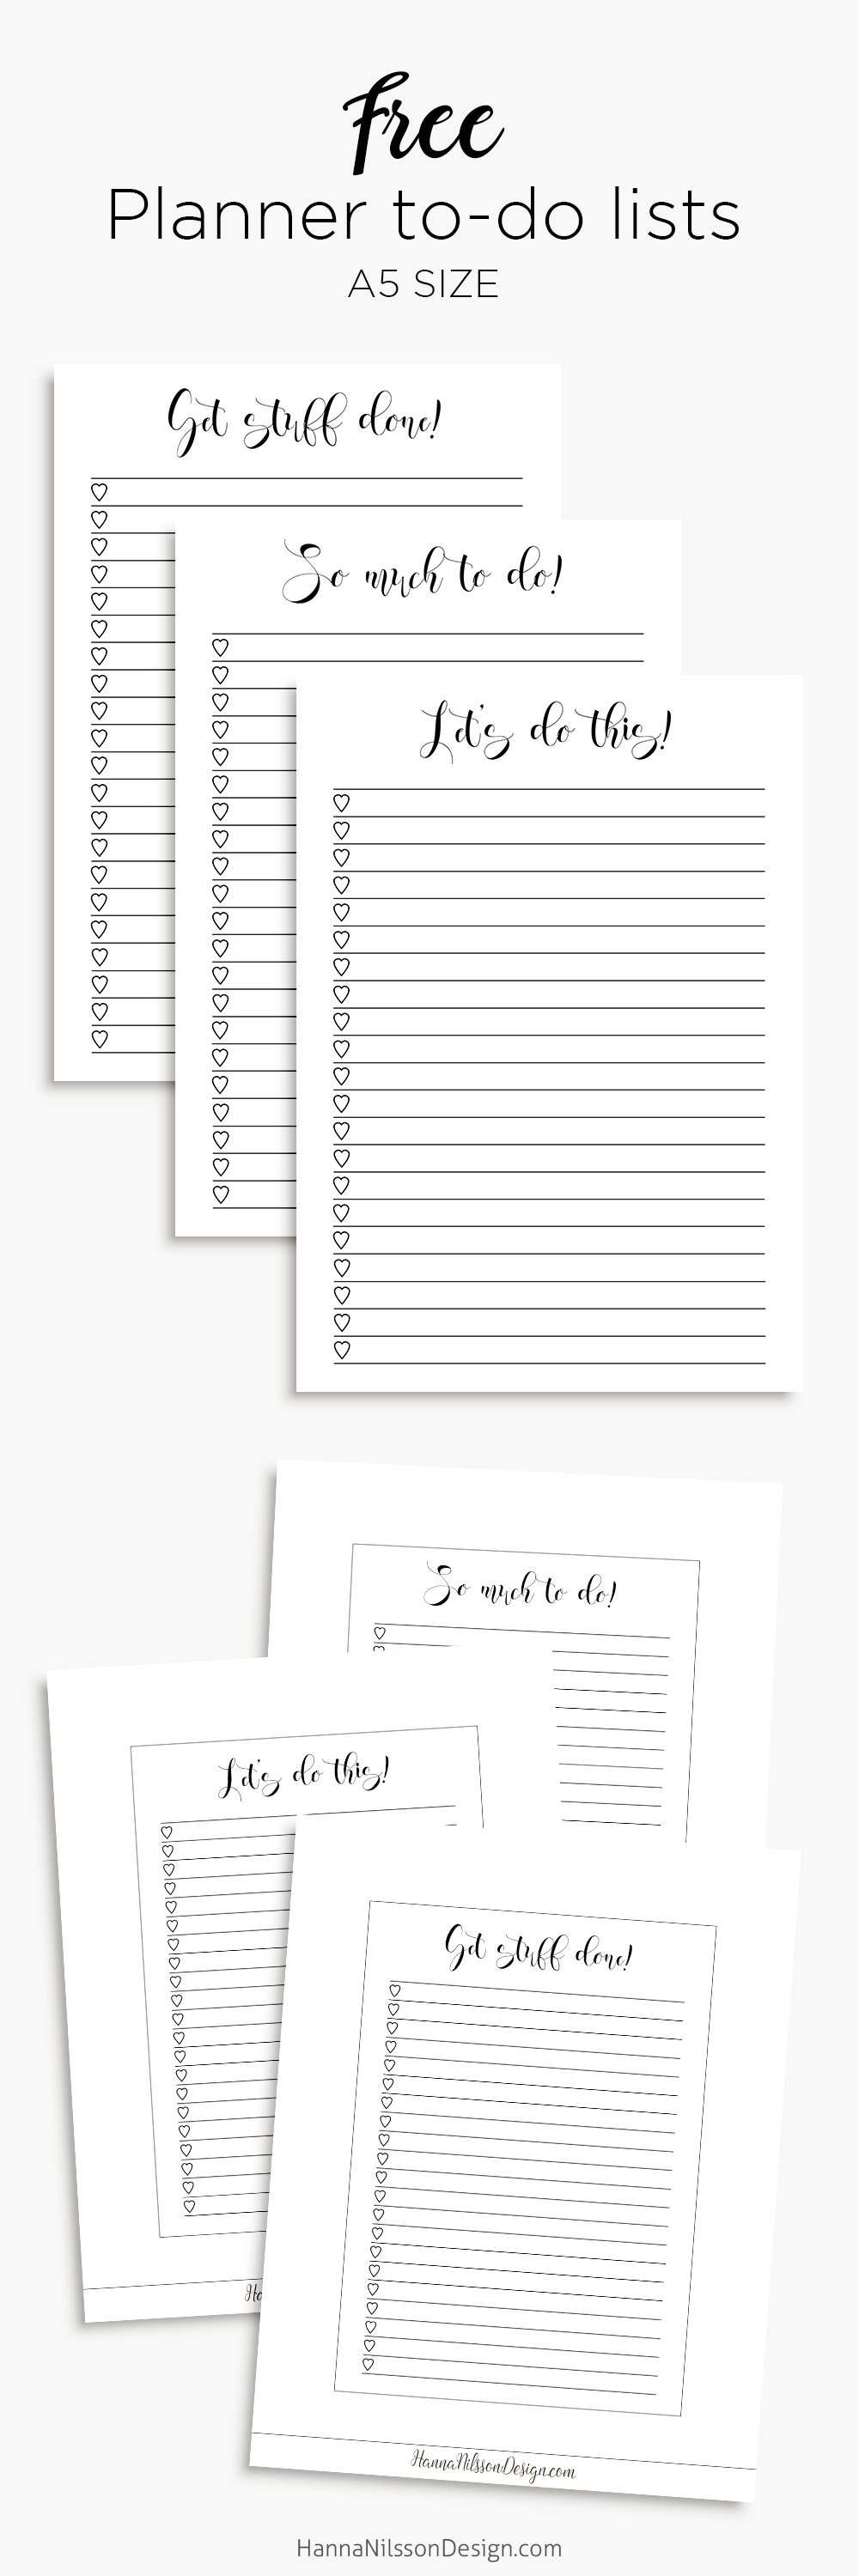 picture about A5 Planner Printables known as Planner toward-do lists printable inside A5 and Person measurement